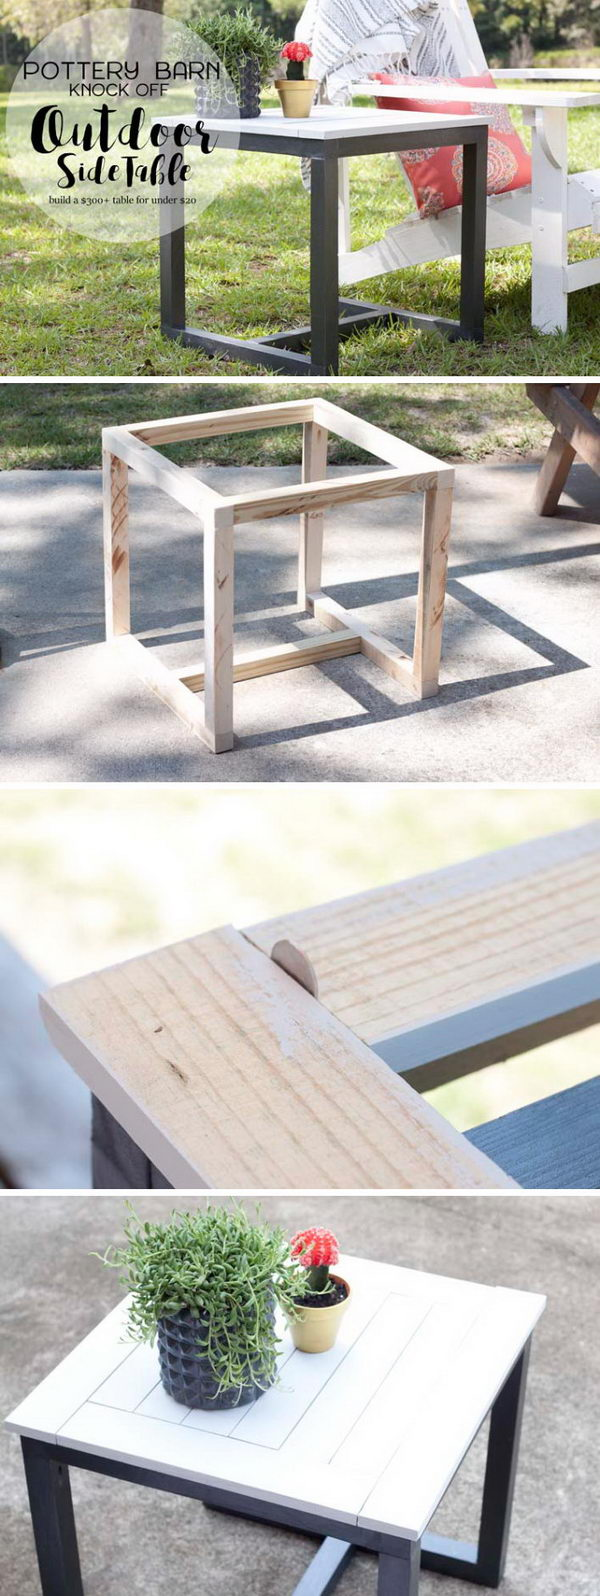 awesome diy side table ideas for outdoors and indoors hative tutorials outdoor pottery barn knockoff plant holder half moon ikea industrial with drawer bedside storage west elm